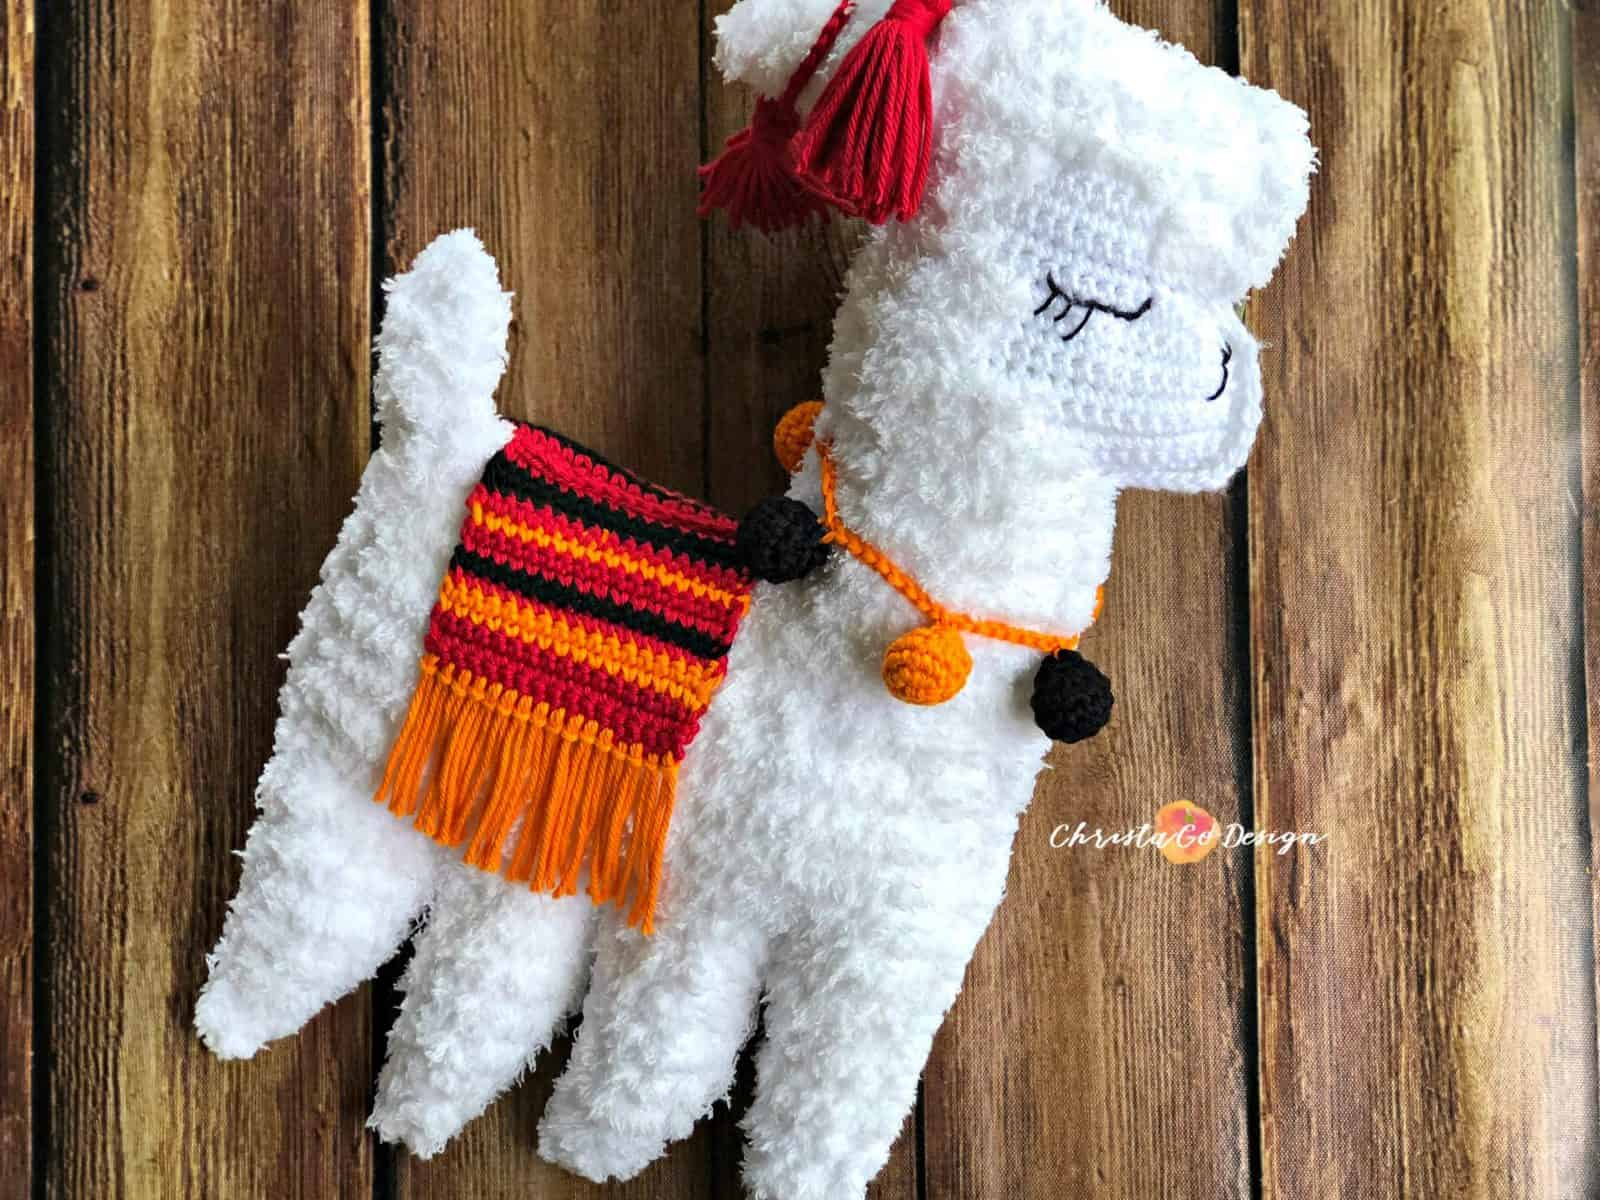 Crochet Llama Plus Tips for Crocheting with Fuzzy Yarn - ChristaCoDesign